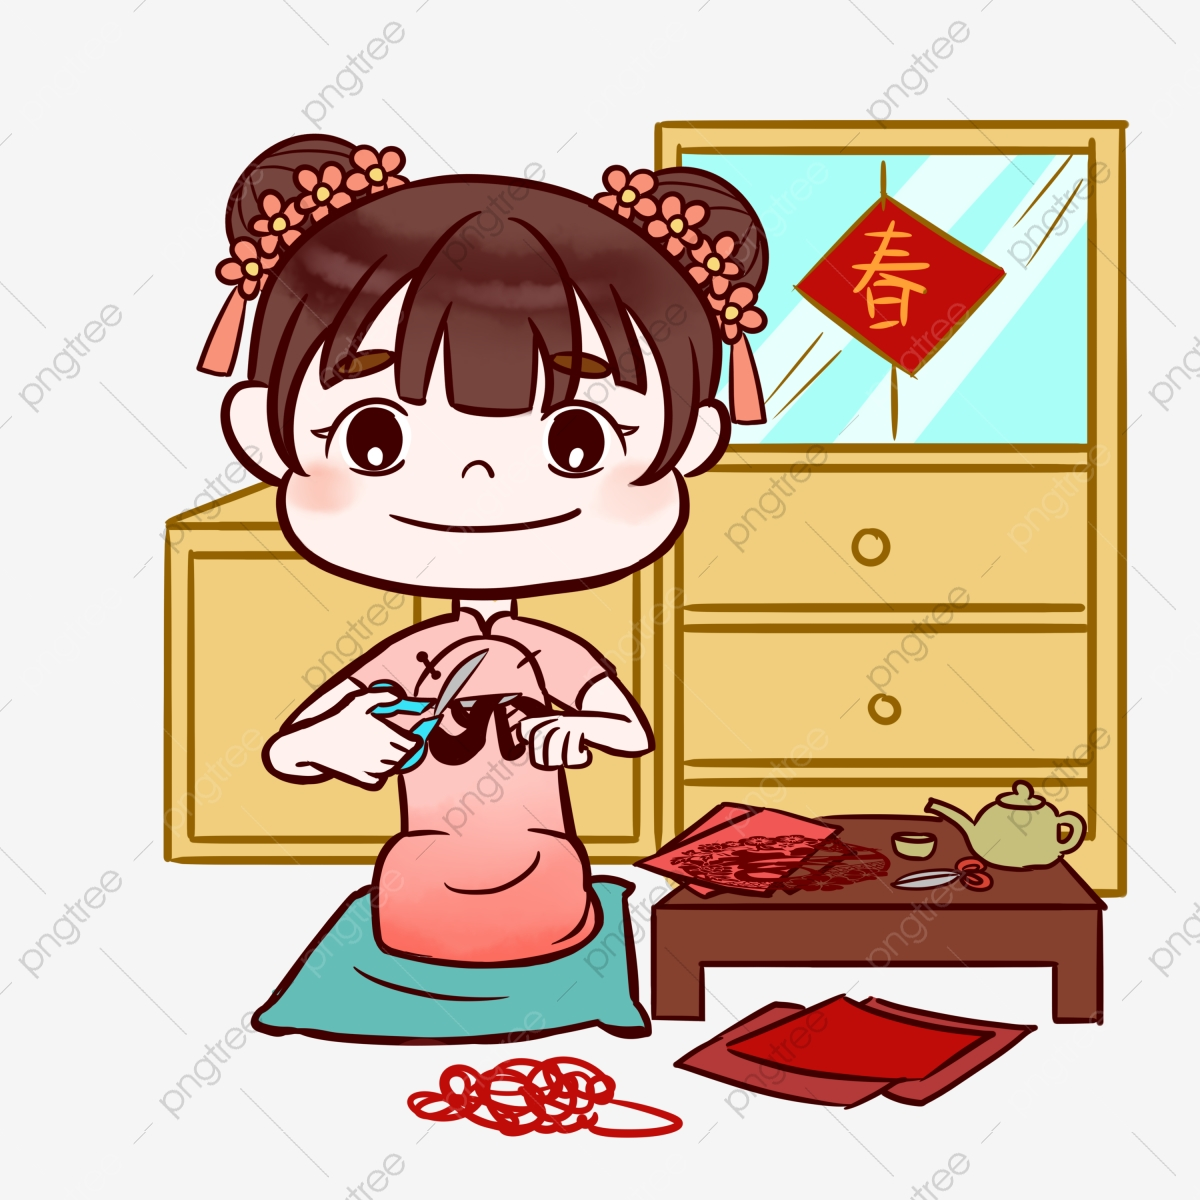 Happy Girl Cartoon Illustration Hand Drawn New Year Illustration Chinese  New Year Festival Illustration, Paper Cut Mom, Red Paper Cut, Happy Girl  PNG Transparent Clipart Image and PSD File for Free Download